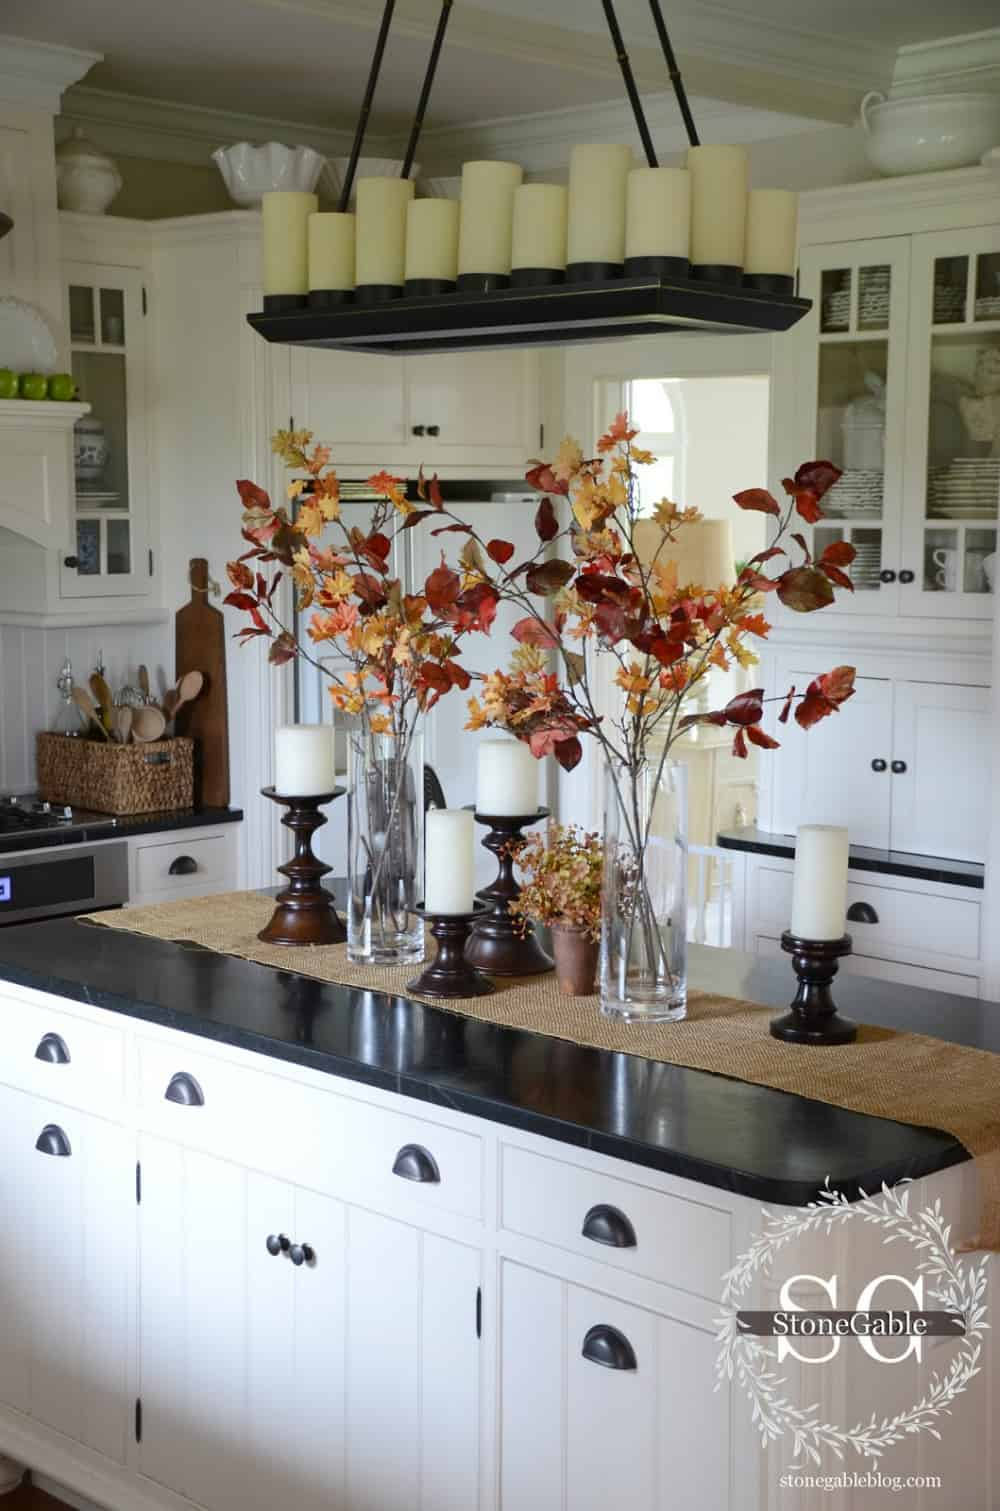 stone-gable-blog-fall-kitchen-decor